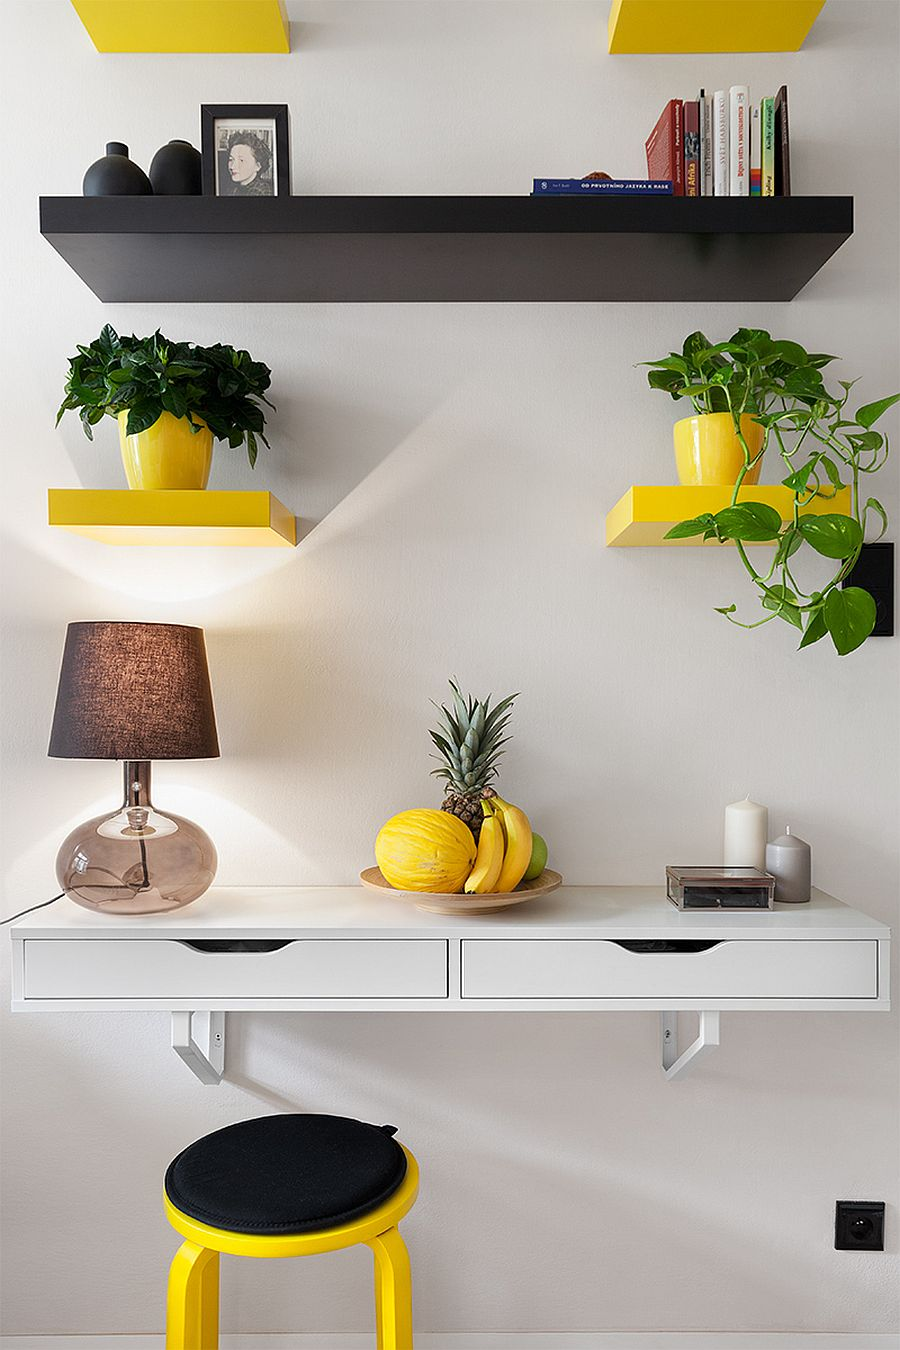 Pops of yellow stand out more vividly thanks to the neutral backdrop